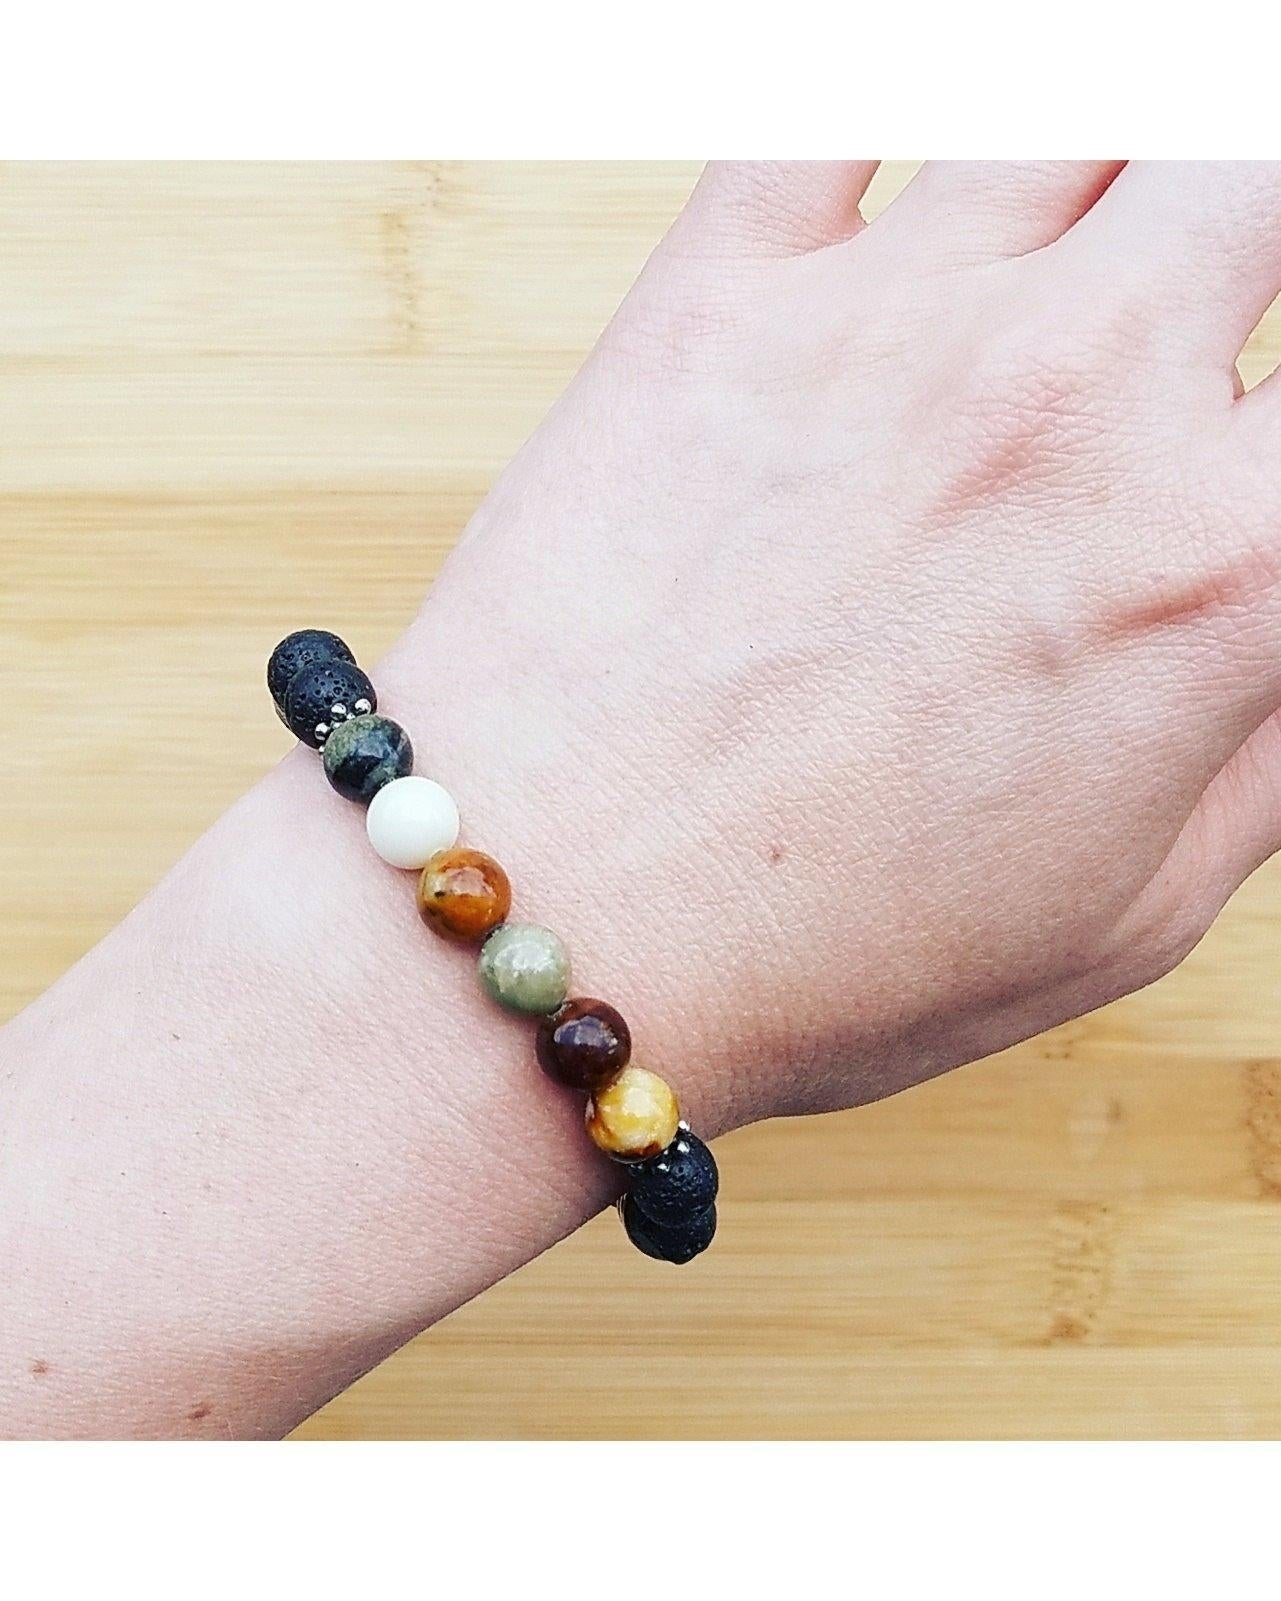 Jade Mixed Color Semi-Precious Gemstone and Lava Rock 8mm Bead Essential Oil Aromatherapy Diffuser Stretch Bracelet P065 - Essentially Elegant